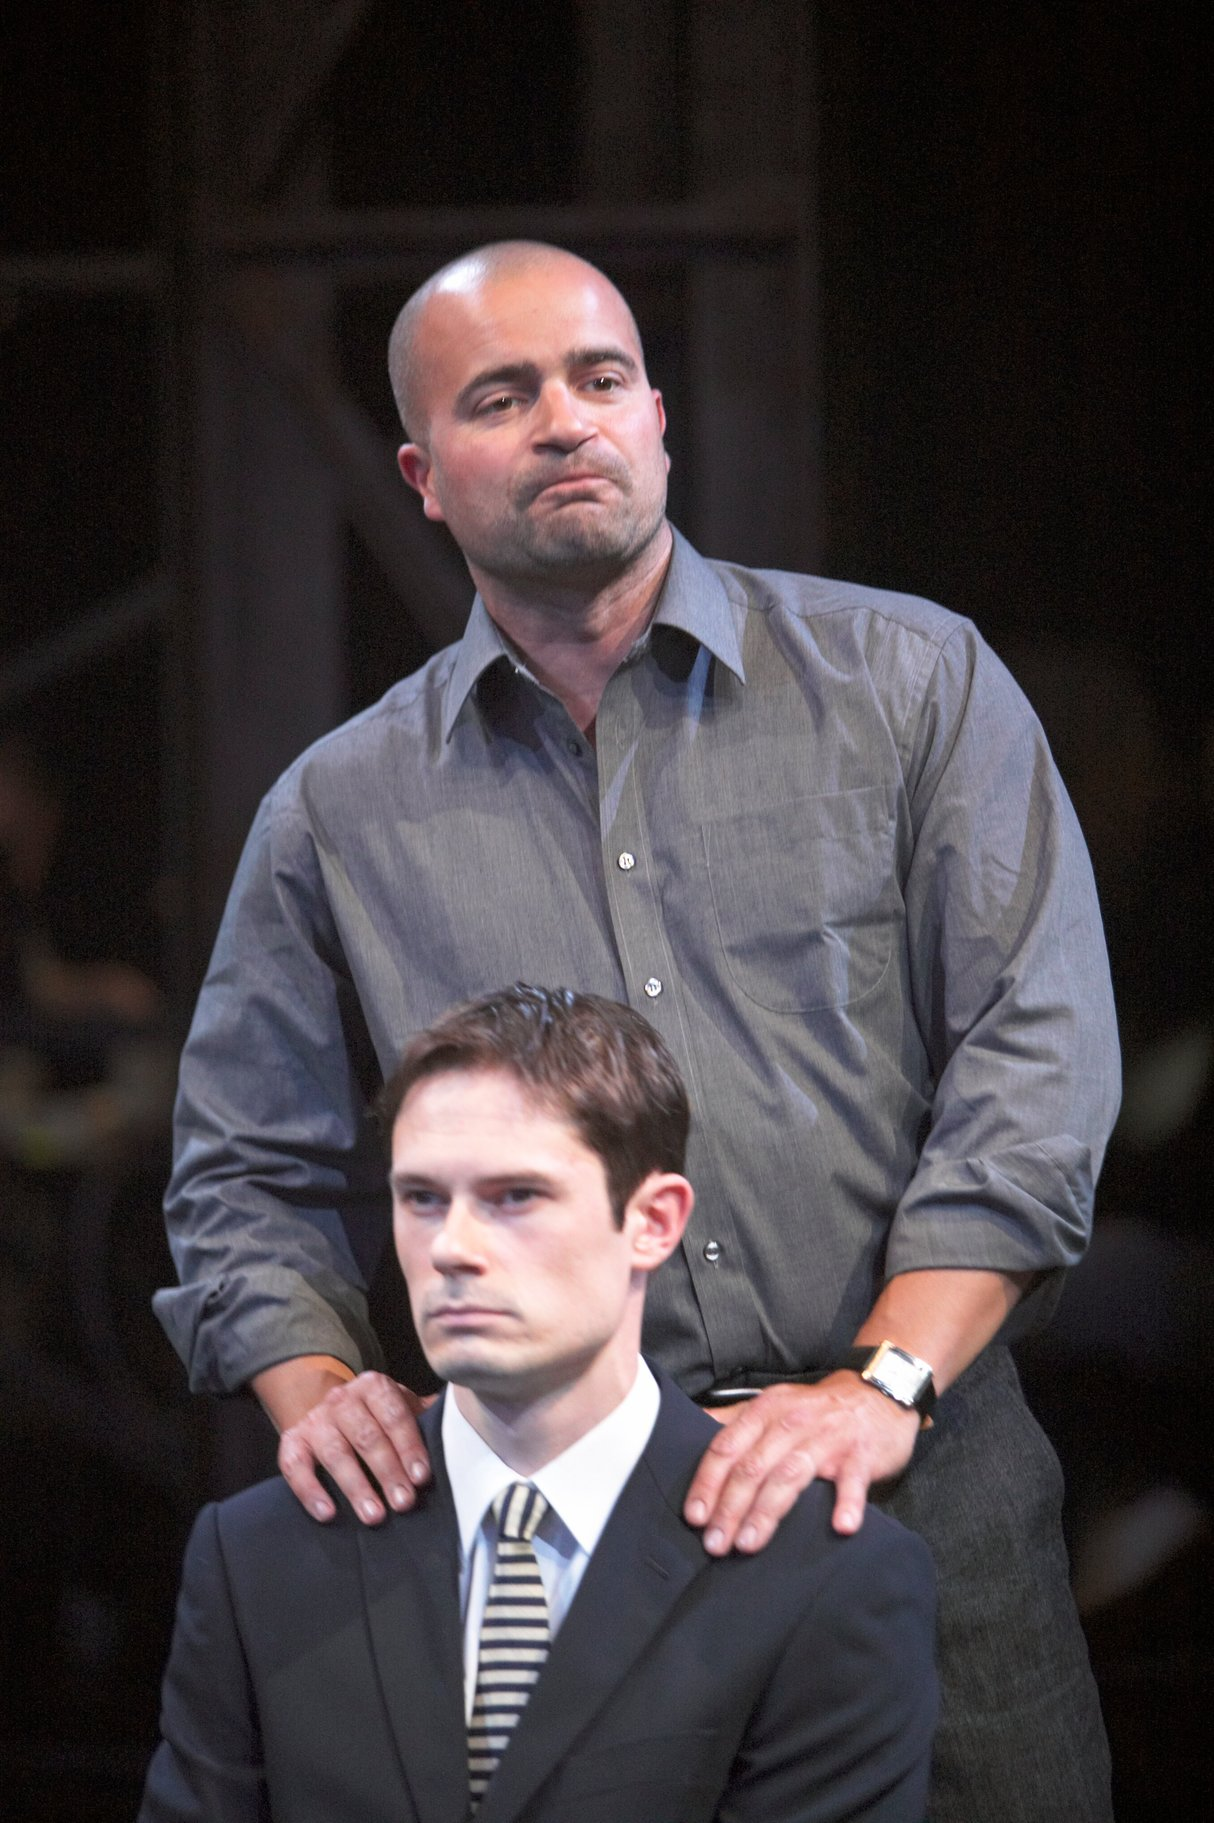 ​Mark Antony standing behind Octavius Caesar with his hands on his shoulders in the 2004 production of Julius Caesar.